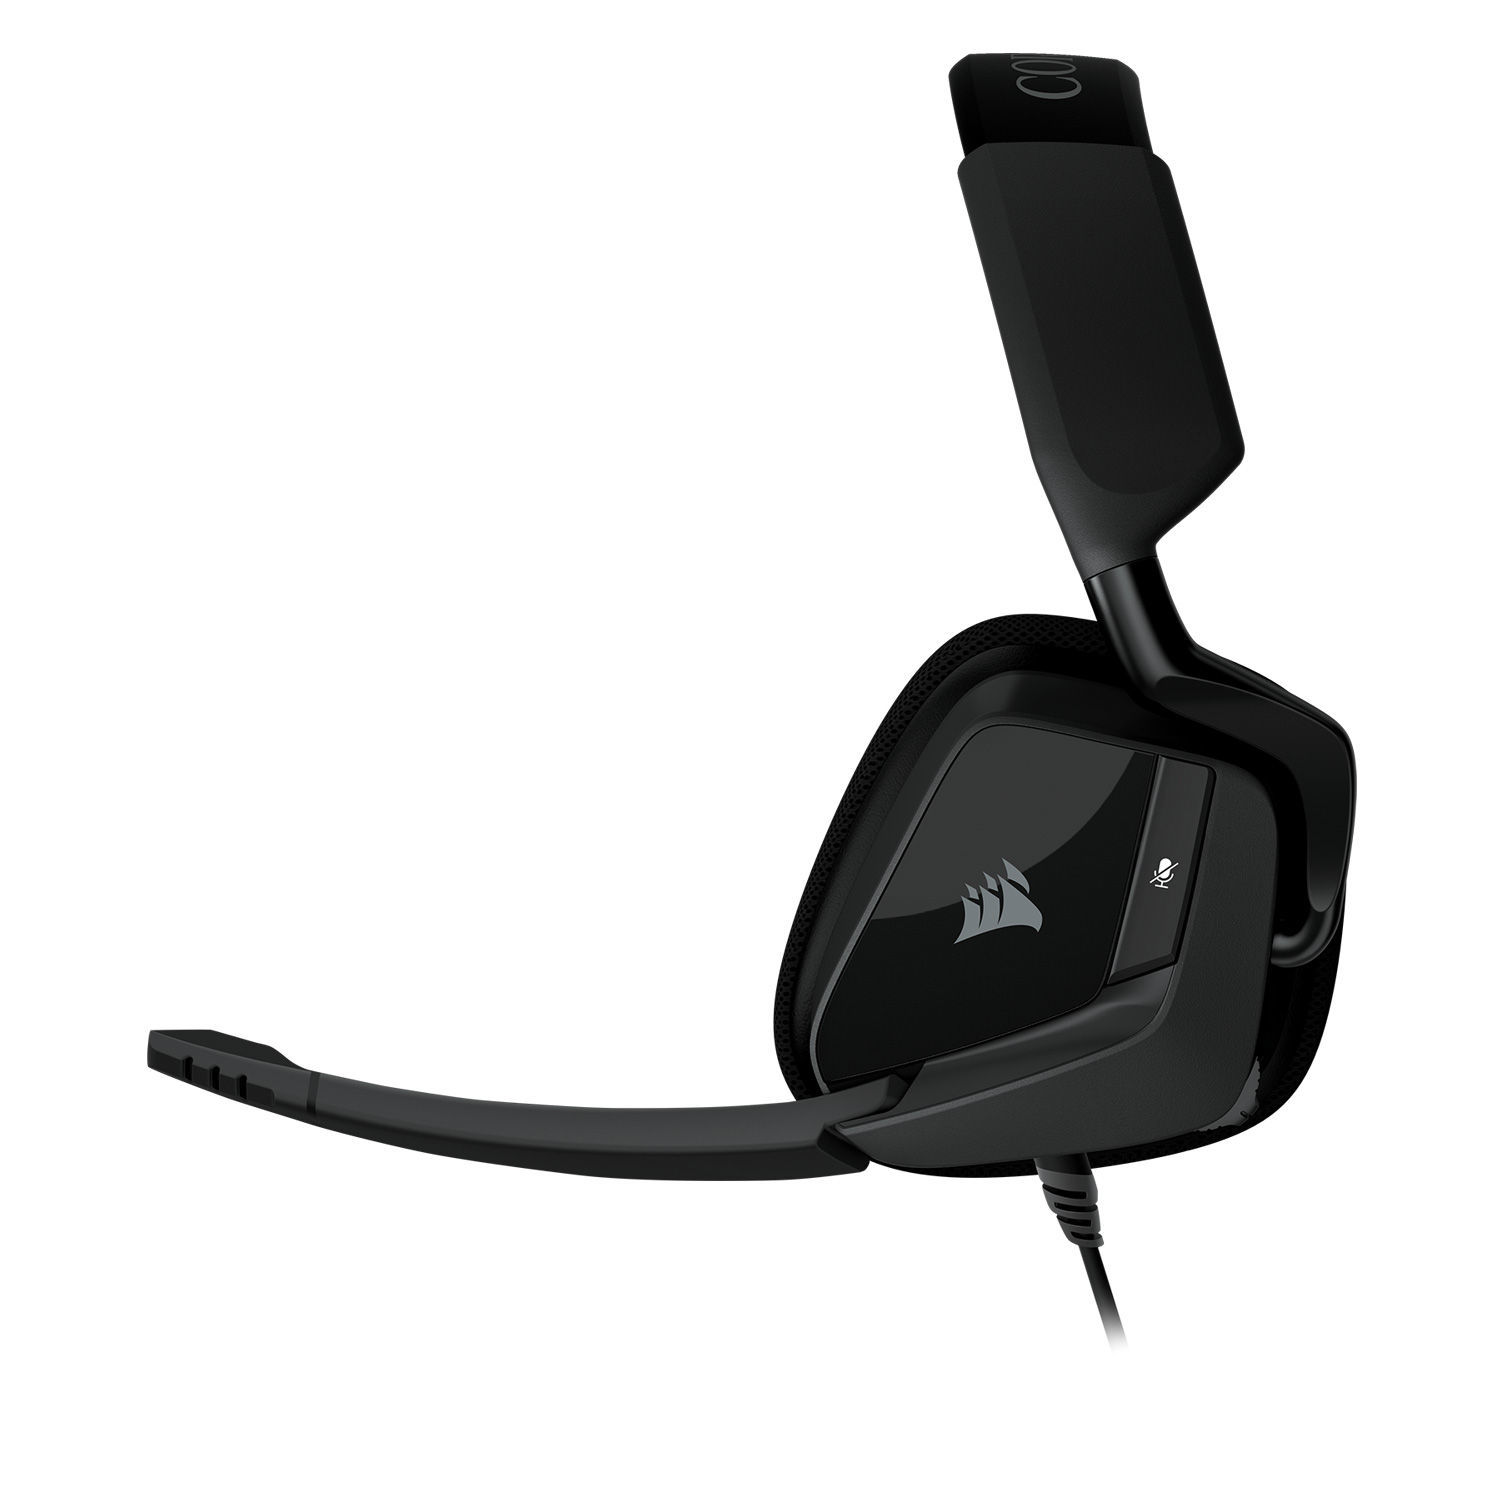 VOID Pro RGB dolby 7.1 USB - Carbon